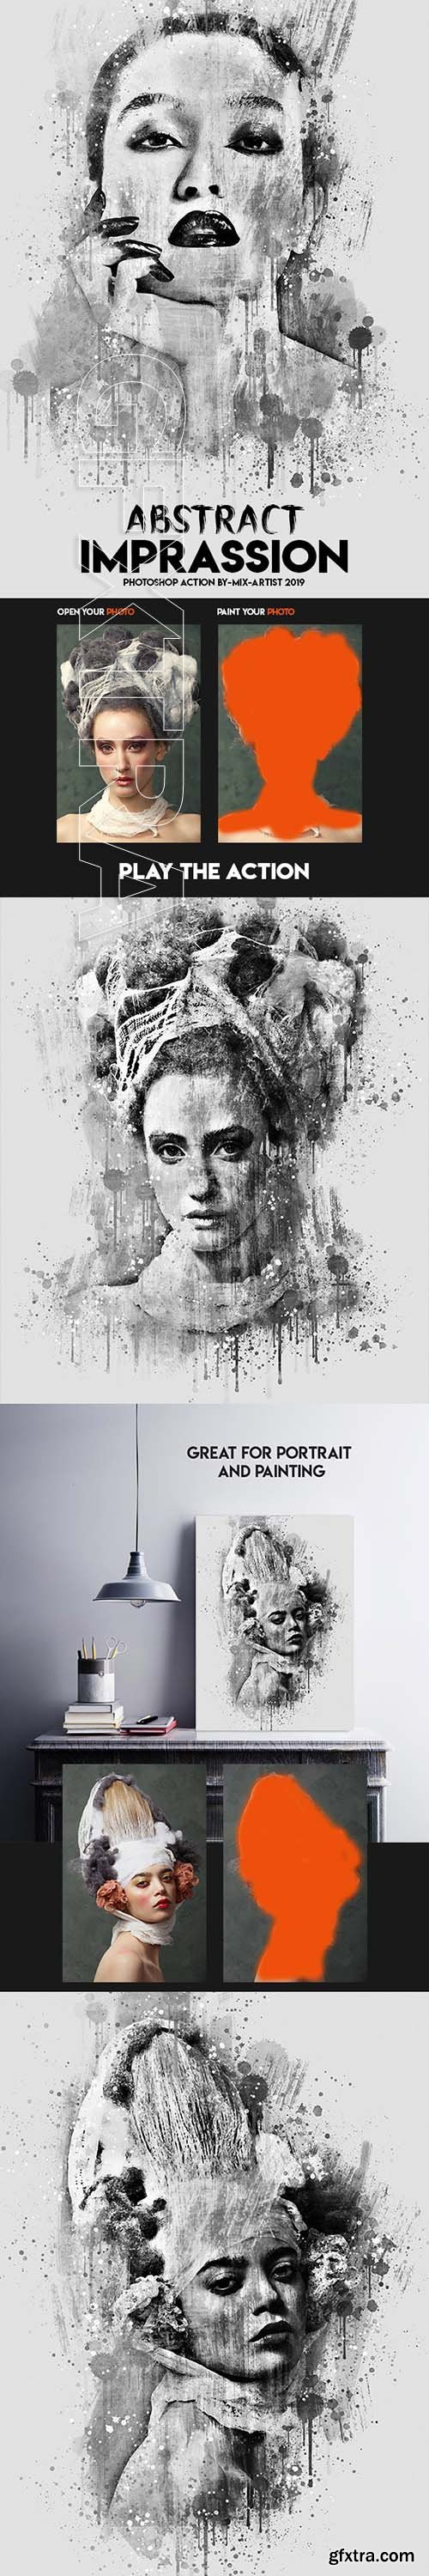 GraphicRiver - Abstract Imprassion Ink Photoshop Action 23752804